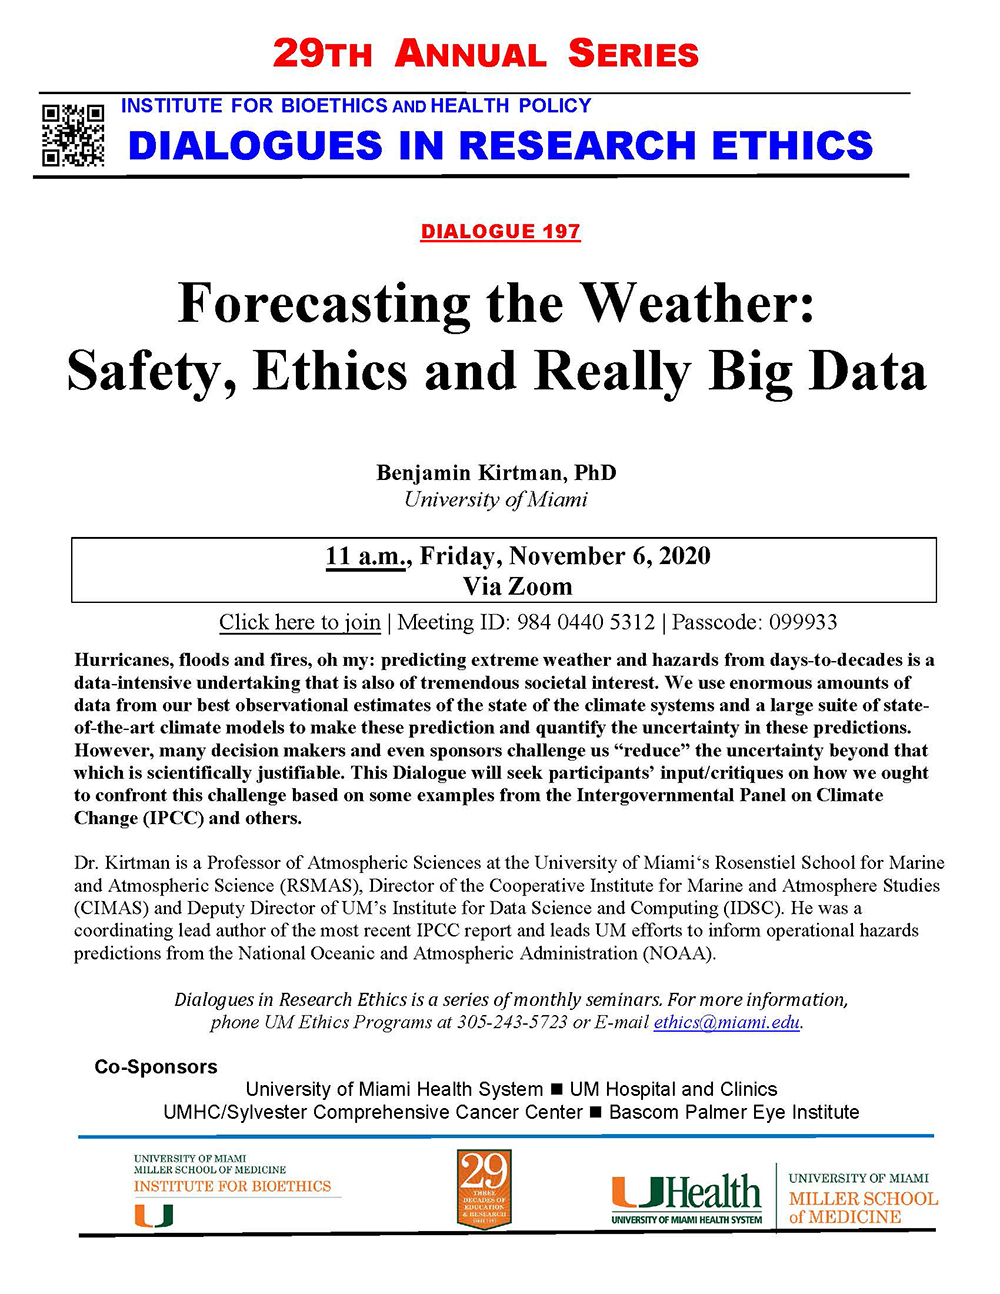 Dialogues in Research Ethics lecture series featuring Ben Kirtman: Hurricanes, Floods, and Fires, Oh My! November 6, 2020, University of Miami Ethics Programs FLYER